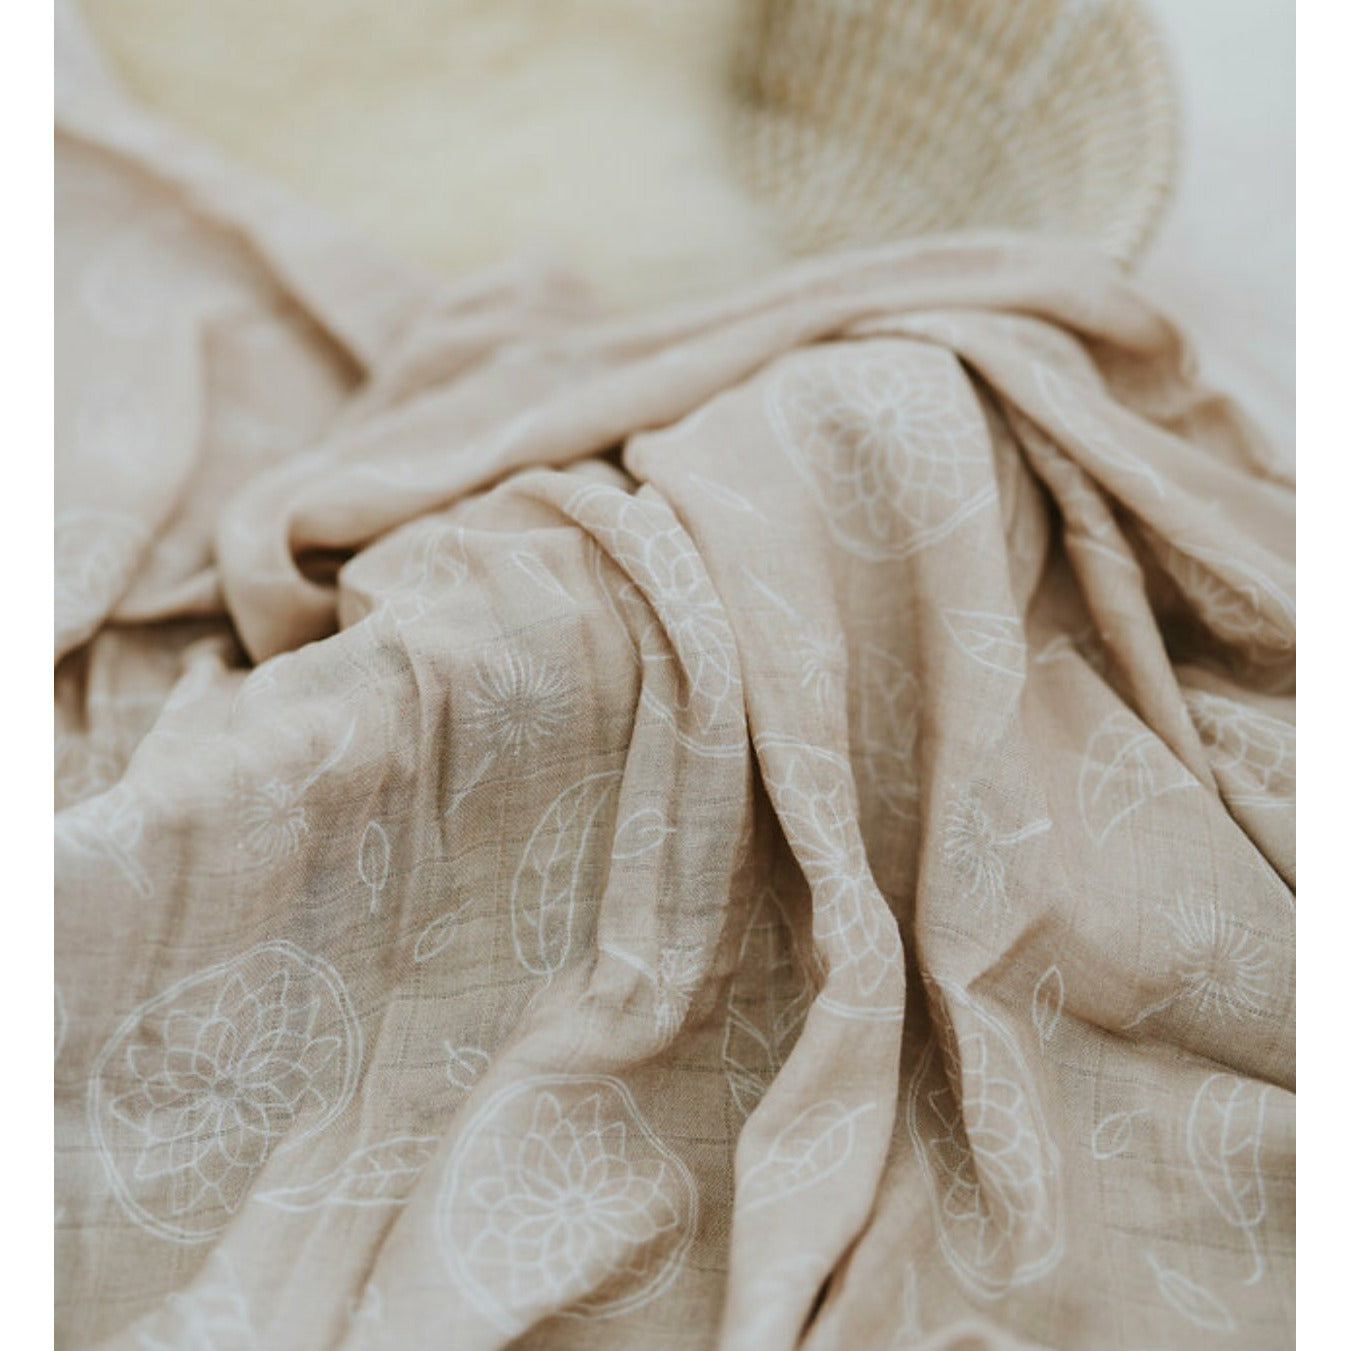 Beach Sand Boho Dreams Bamboo muslin Swaddle wrap - lunastreasures